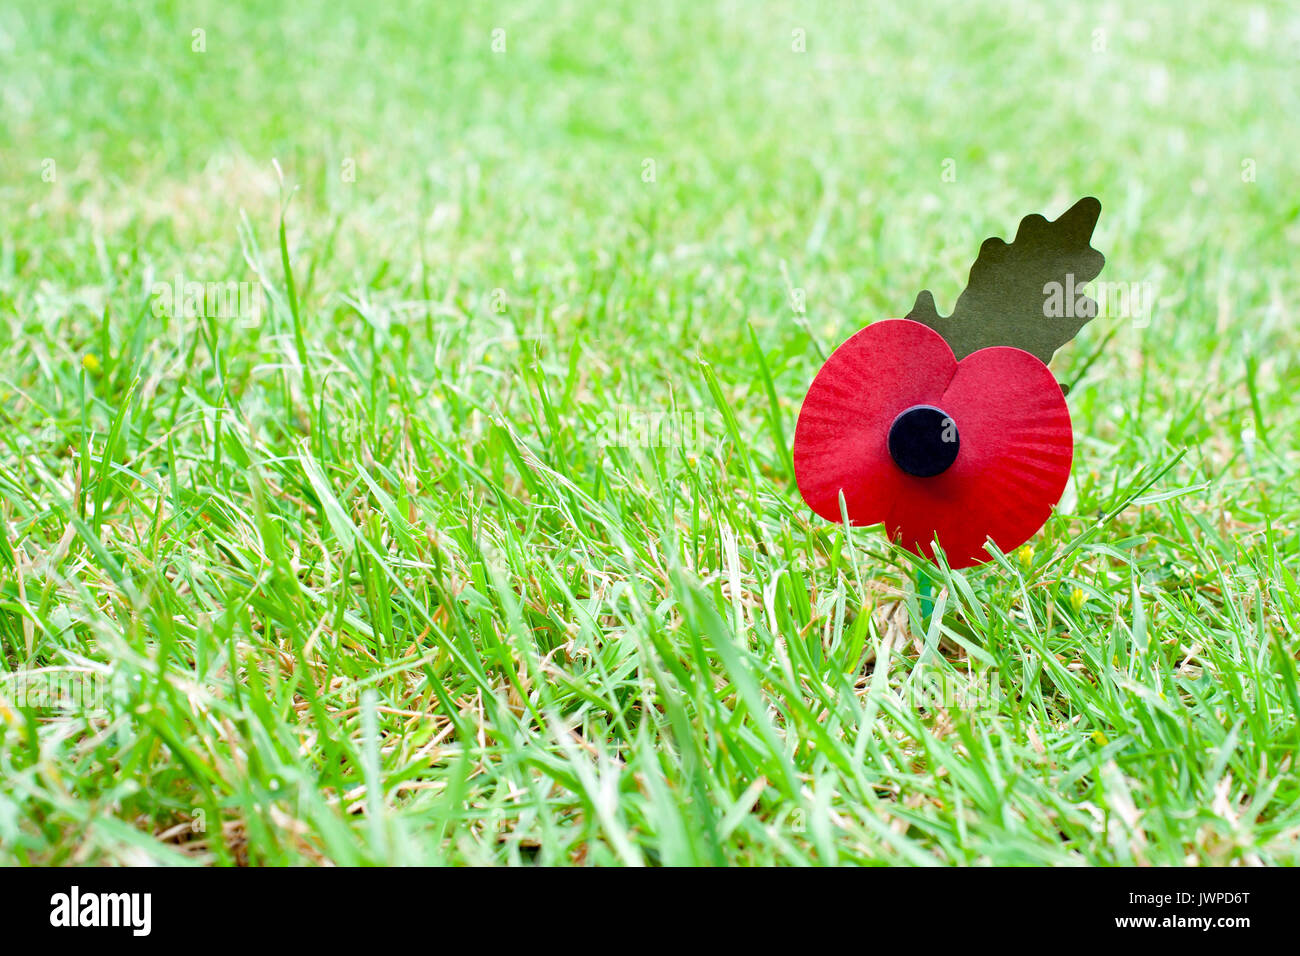 Remembrance day poppy laying in grass with a shallow depth of field and copyspace - Stock Image